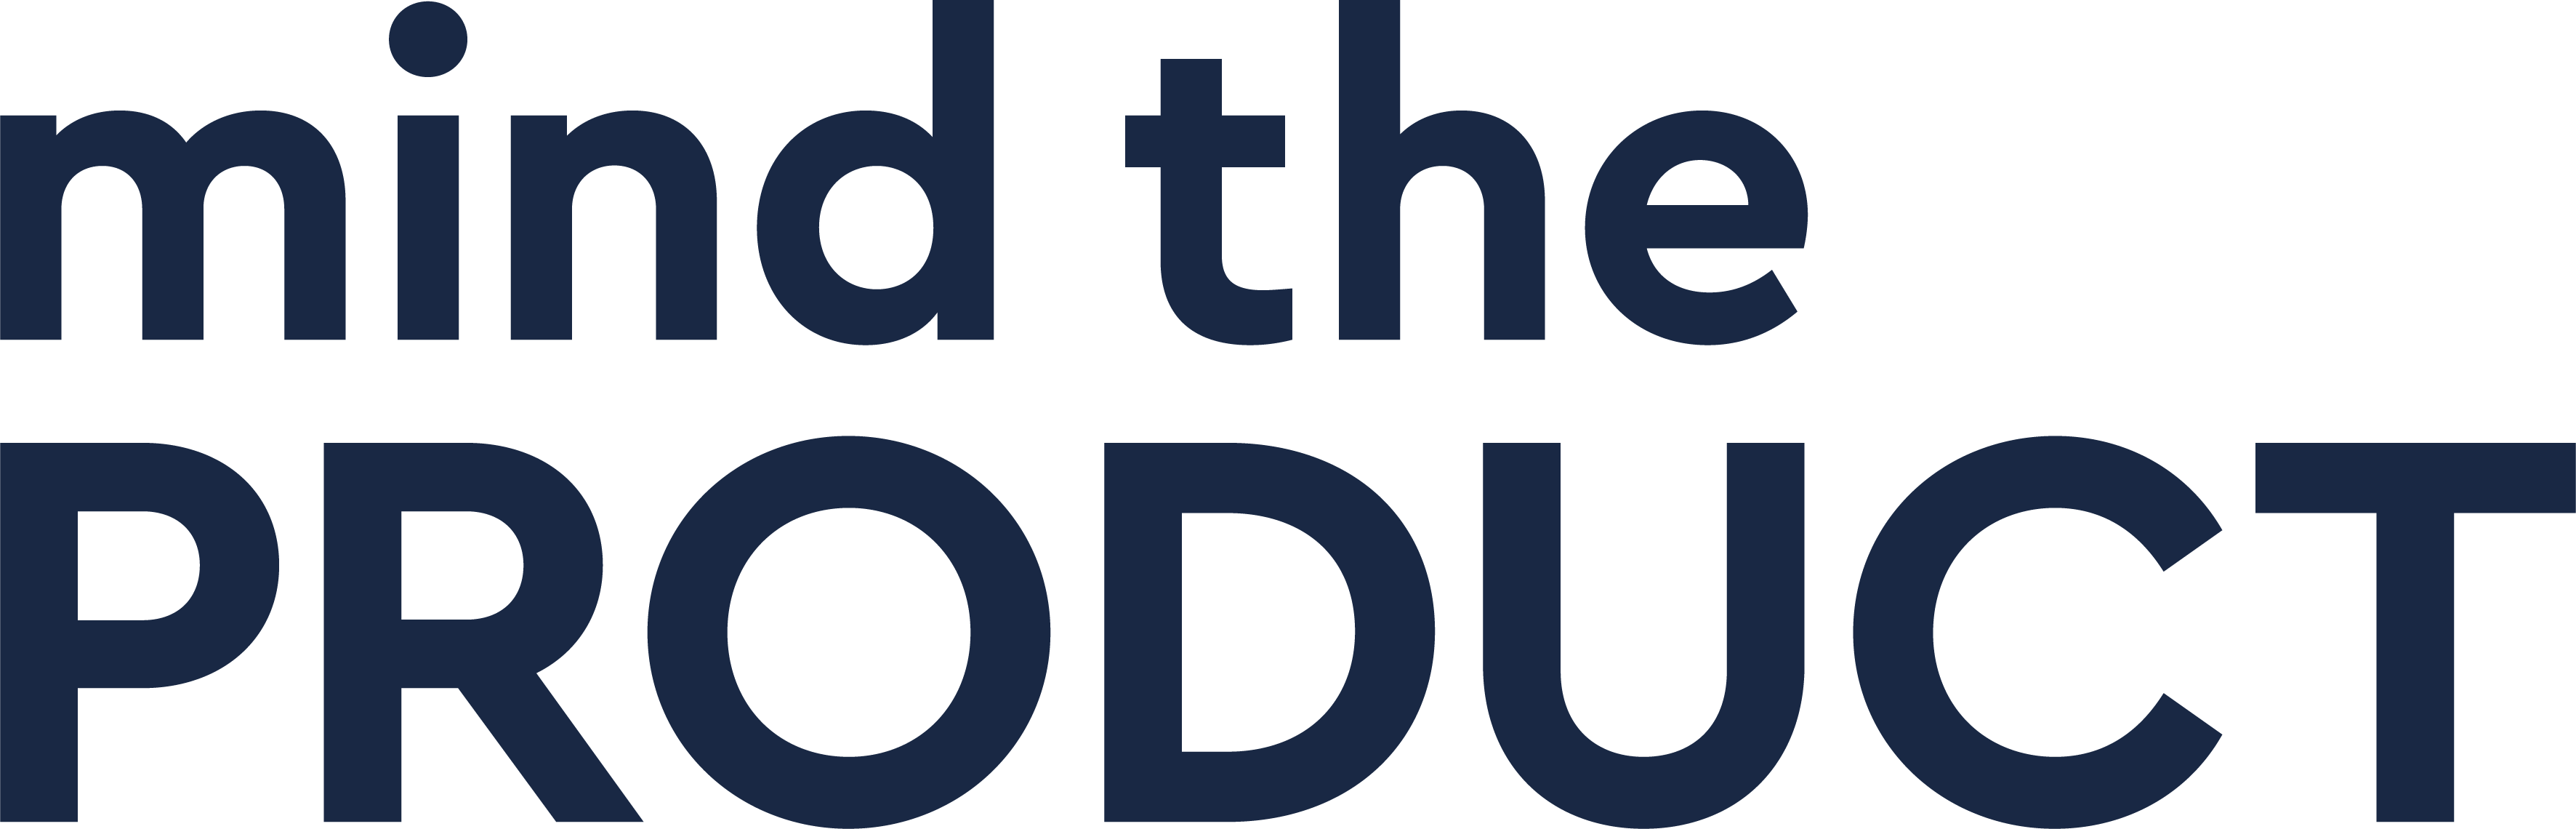 The Mind the Product logo